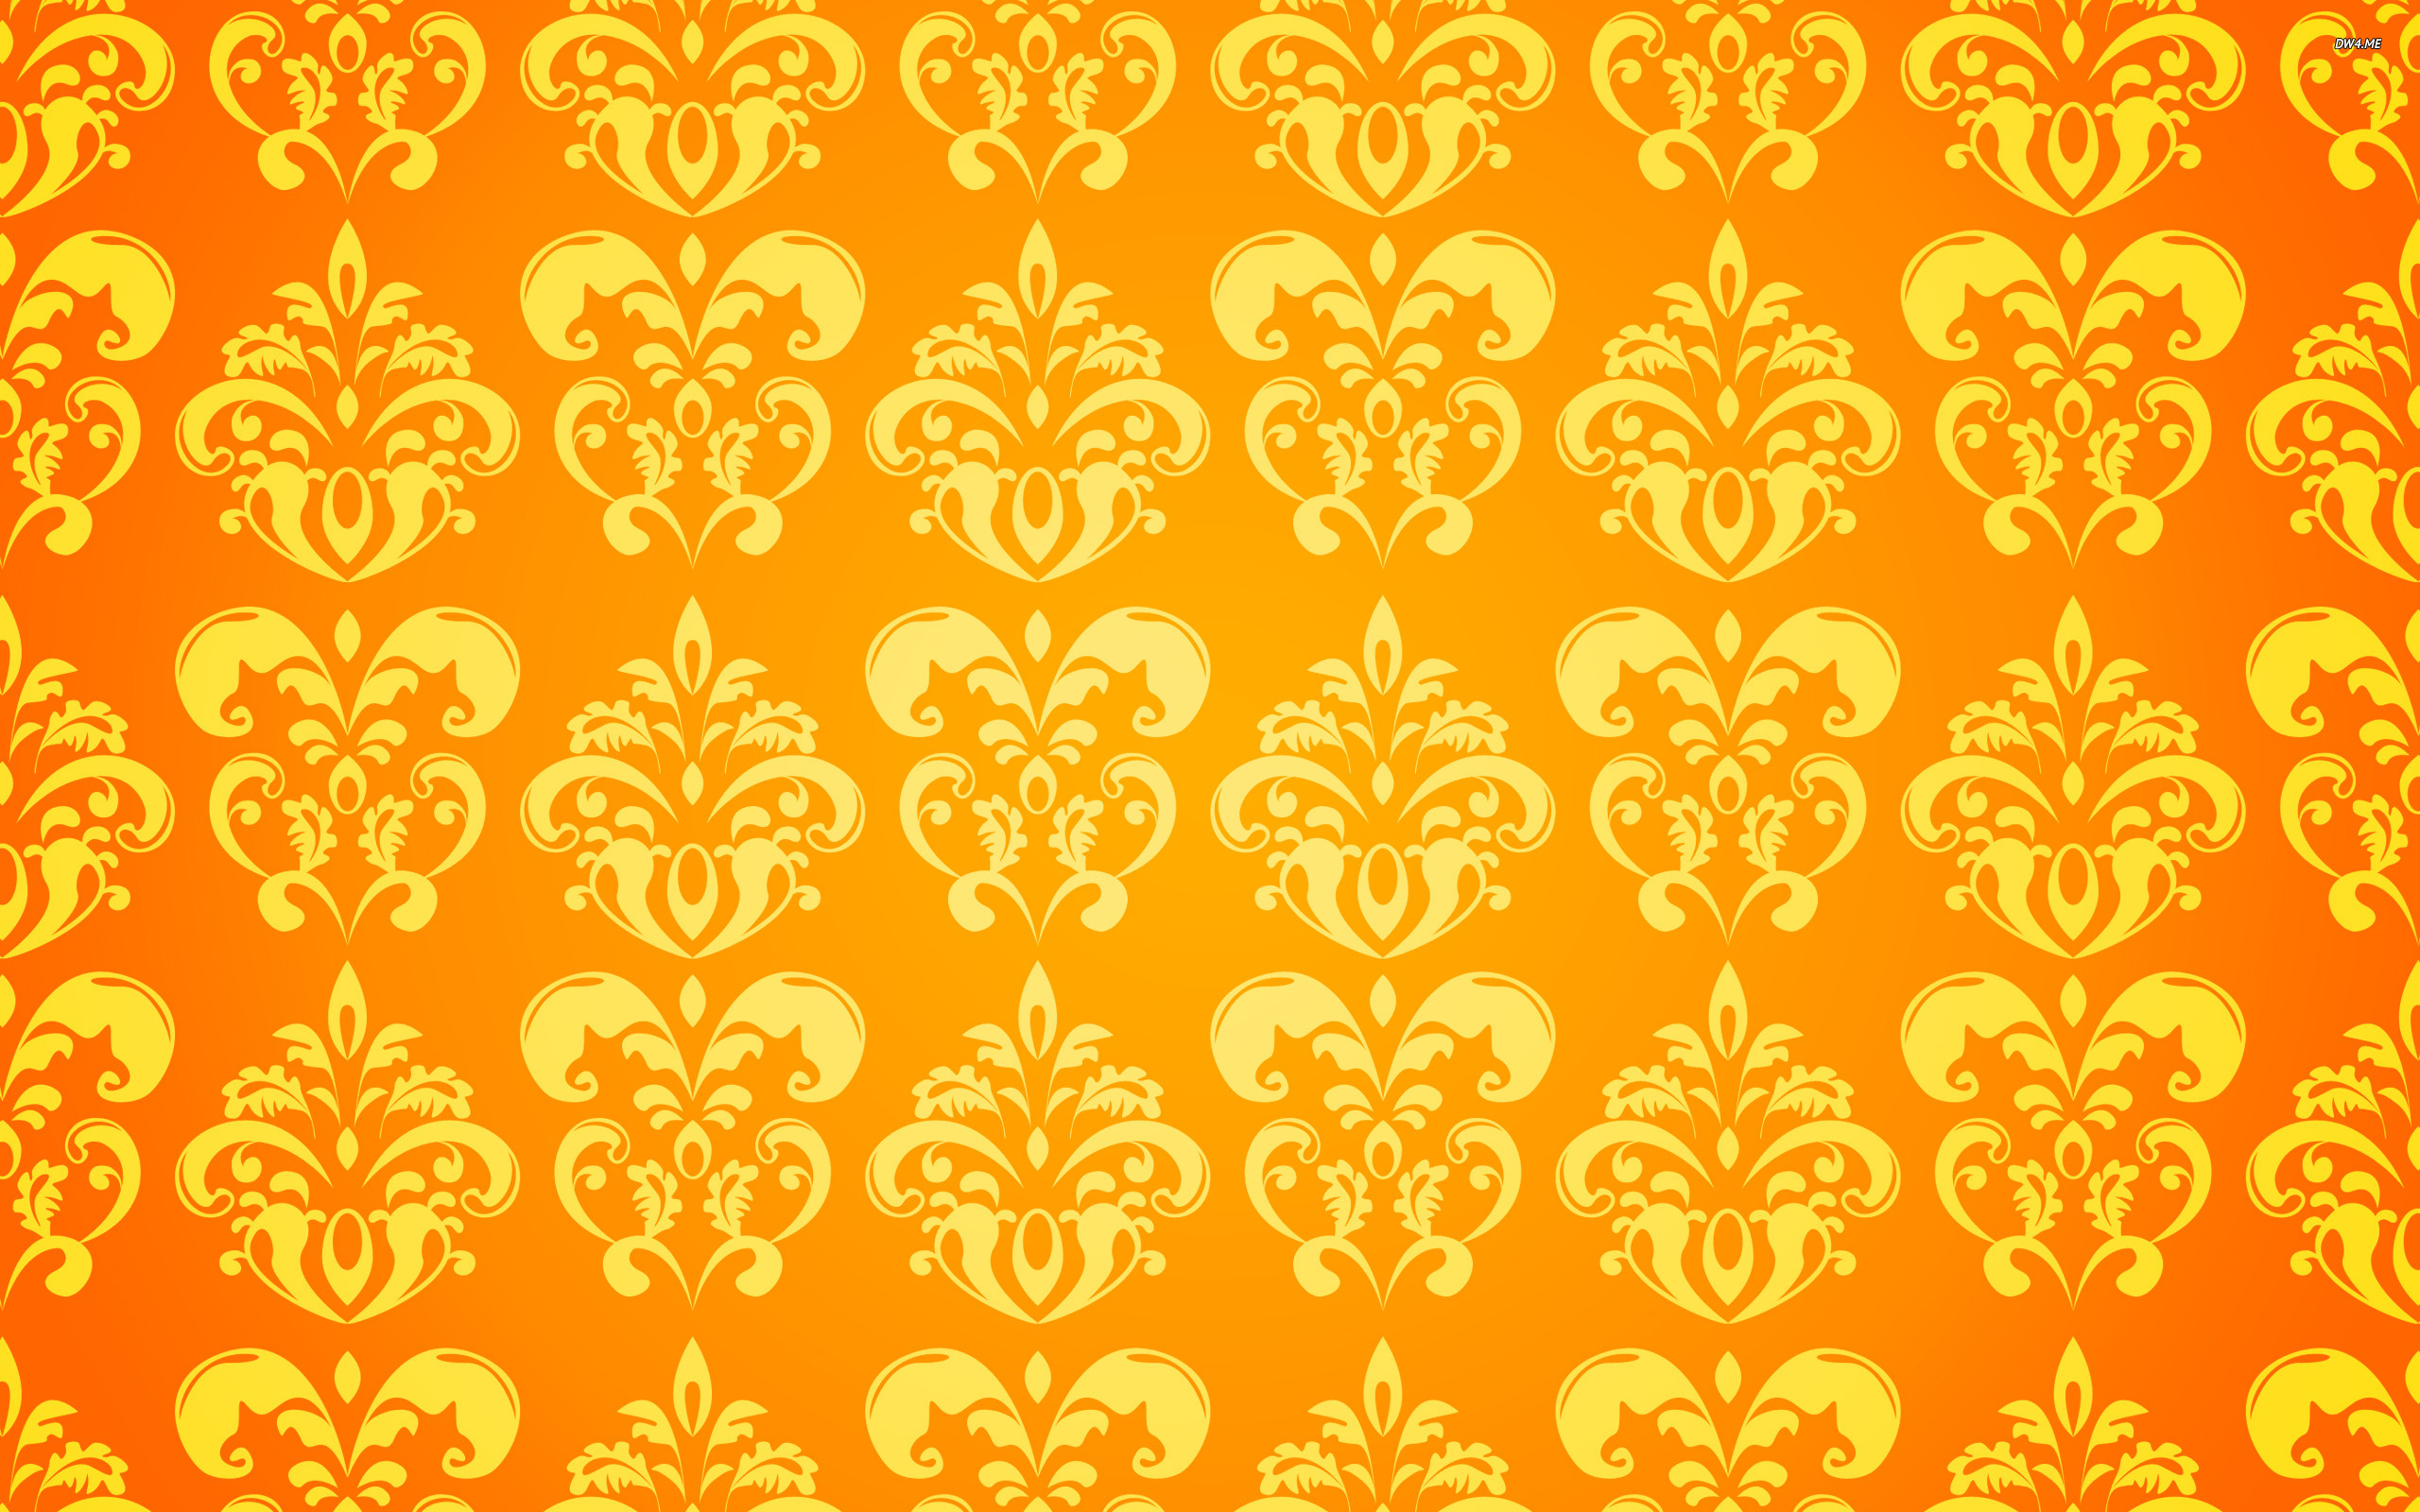 Vintage pattern wallpaper   Vector wallpapers   868 2560x1600